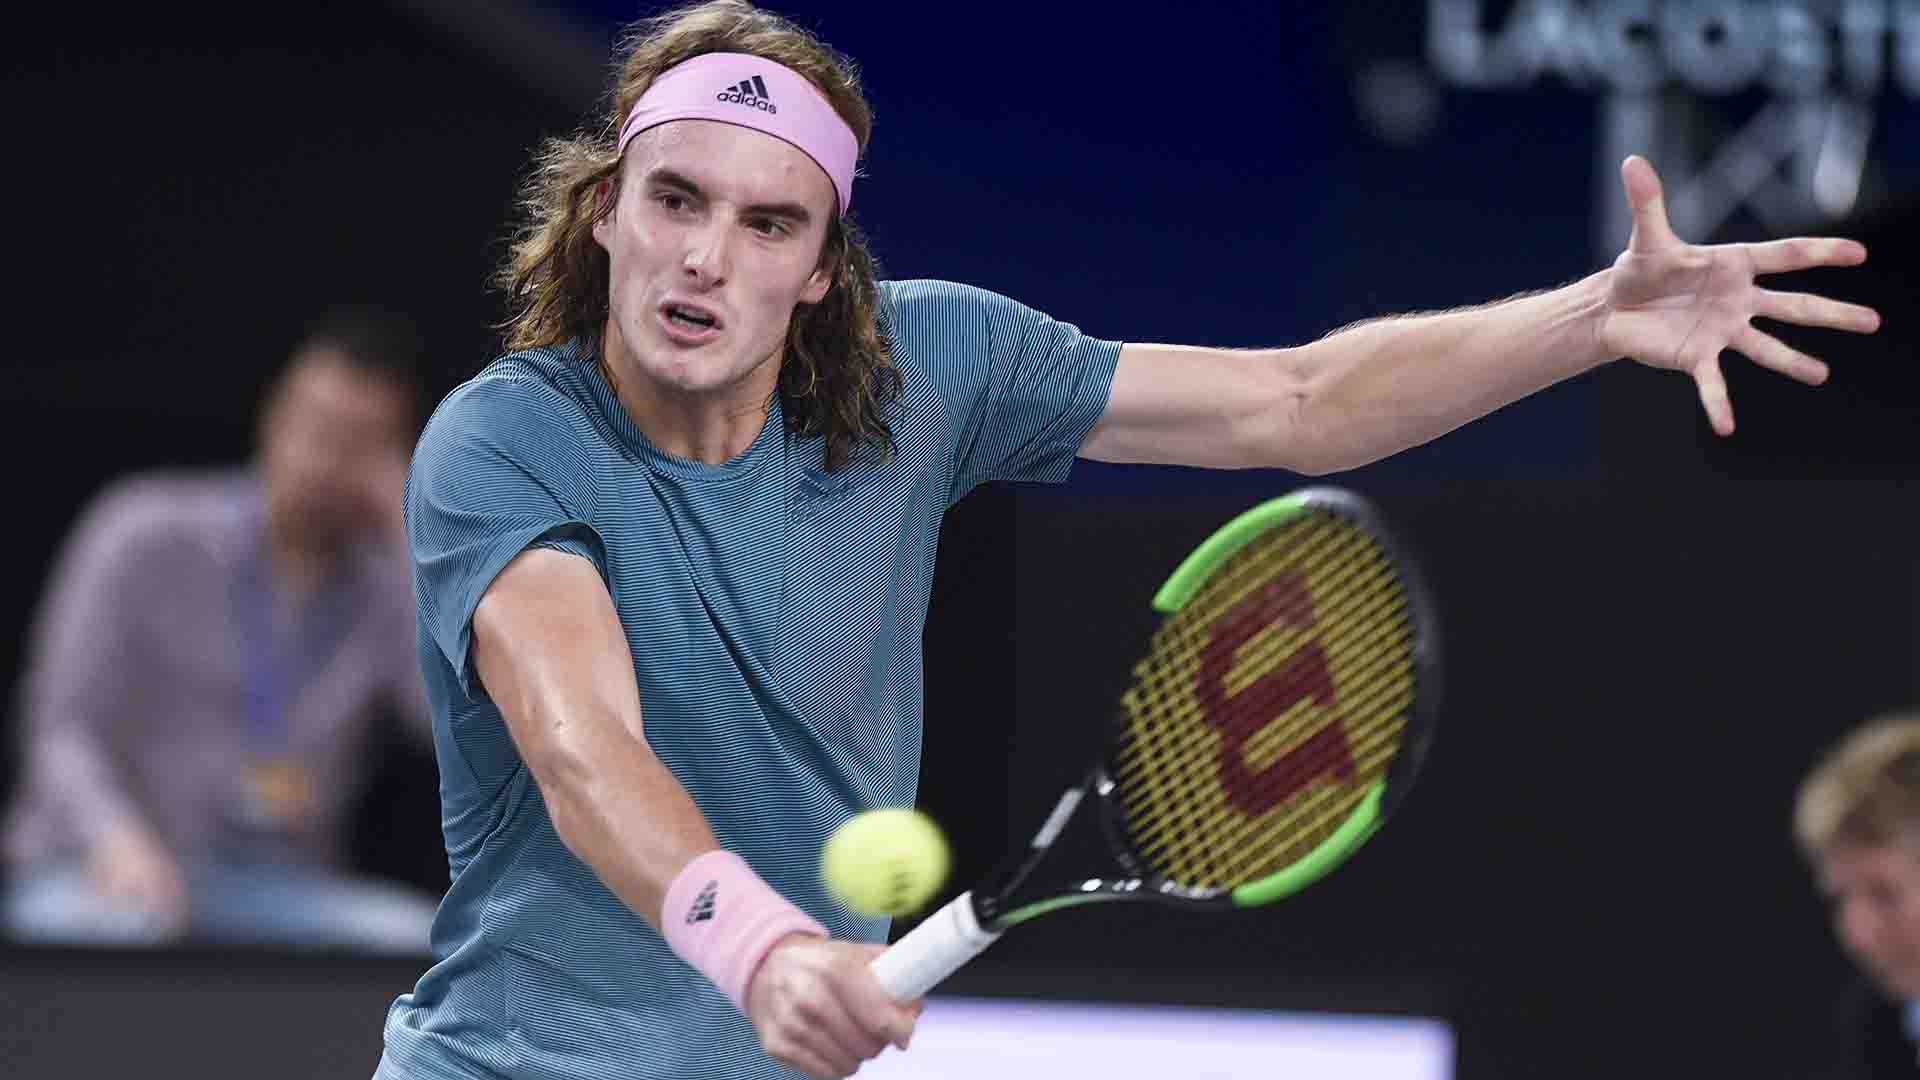 Stefanos Tsitsipas reaches the Open 13 Provence quarter-finals on Wednesday.